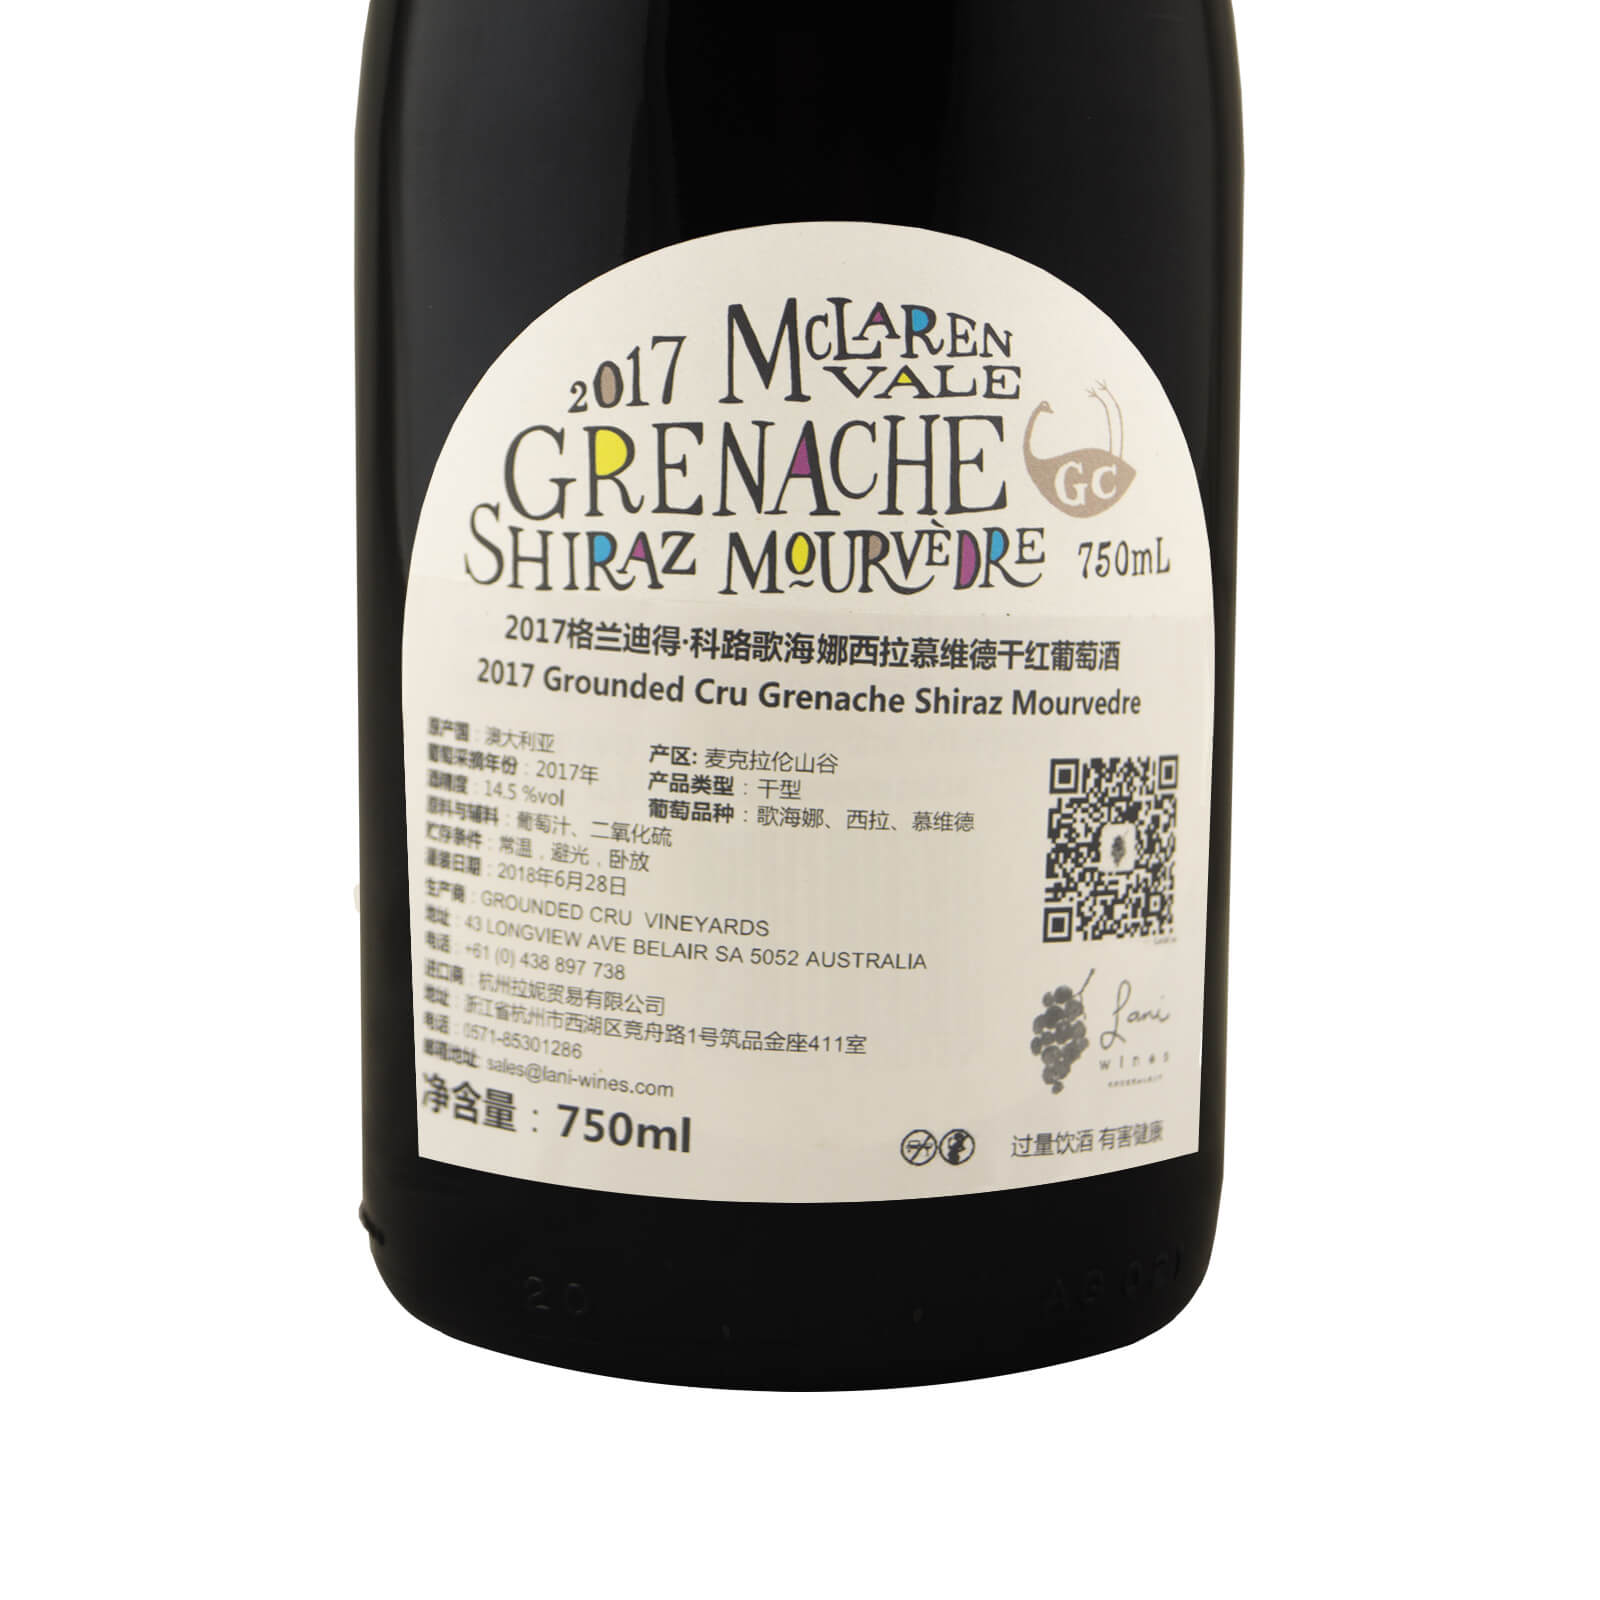 products-grounded-cru-mclaren-vale-grenache-shiraz-mouvedre-c